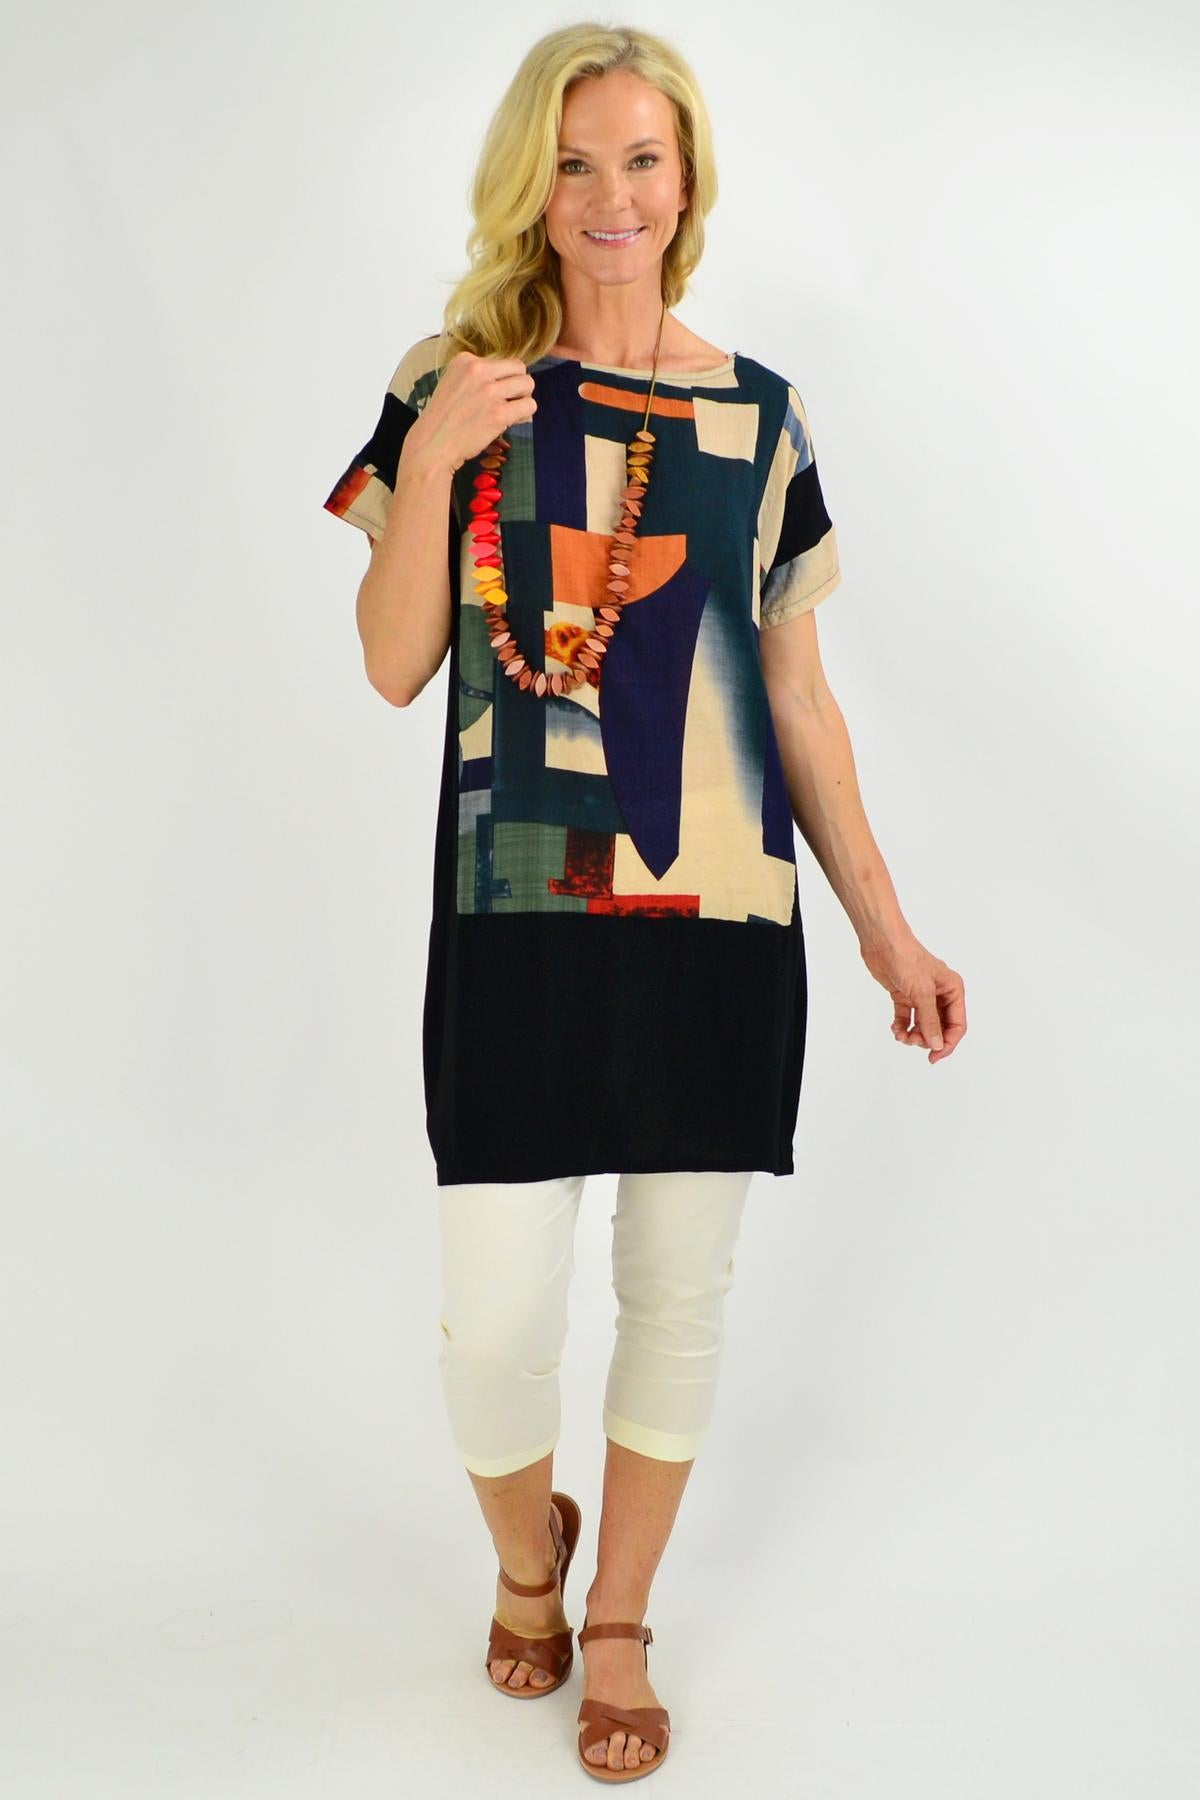 Abstract Art Tunic Top | I Love Tunics | Tunic Tops | Tunic | Tunic Dresses  | womens clothing online